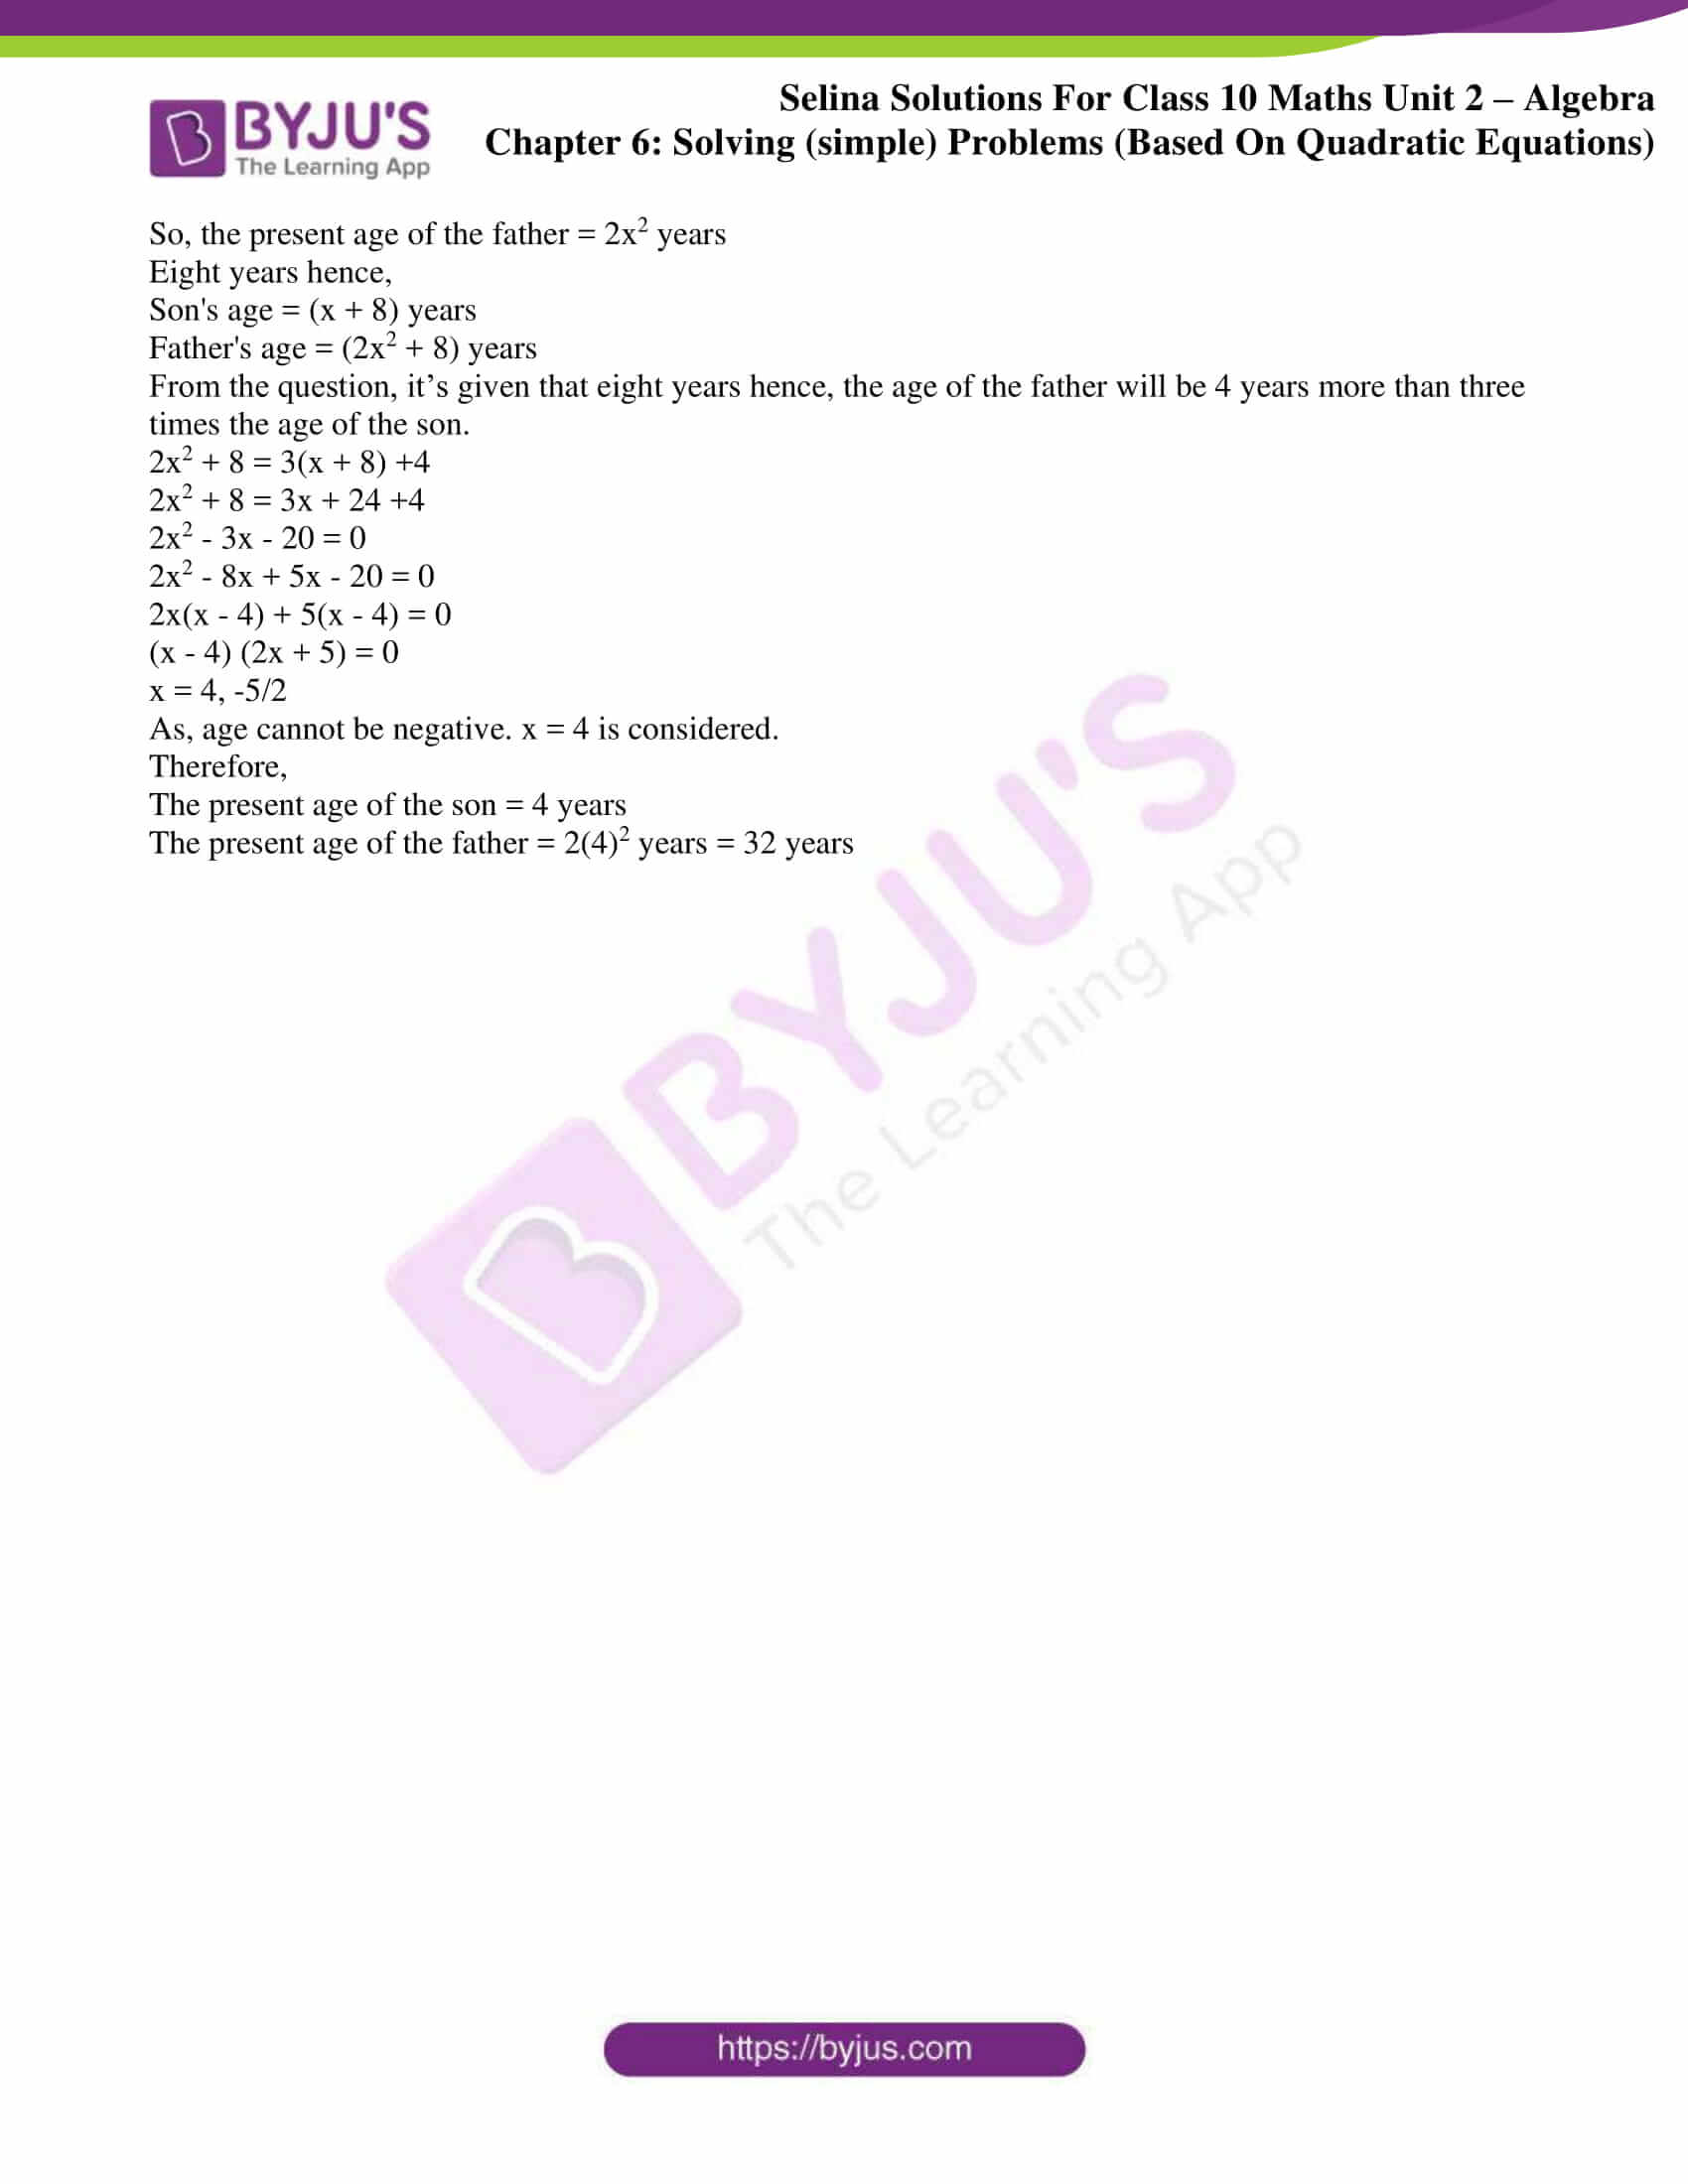 selina solution concise maths class 10 chapter 6d